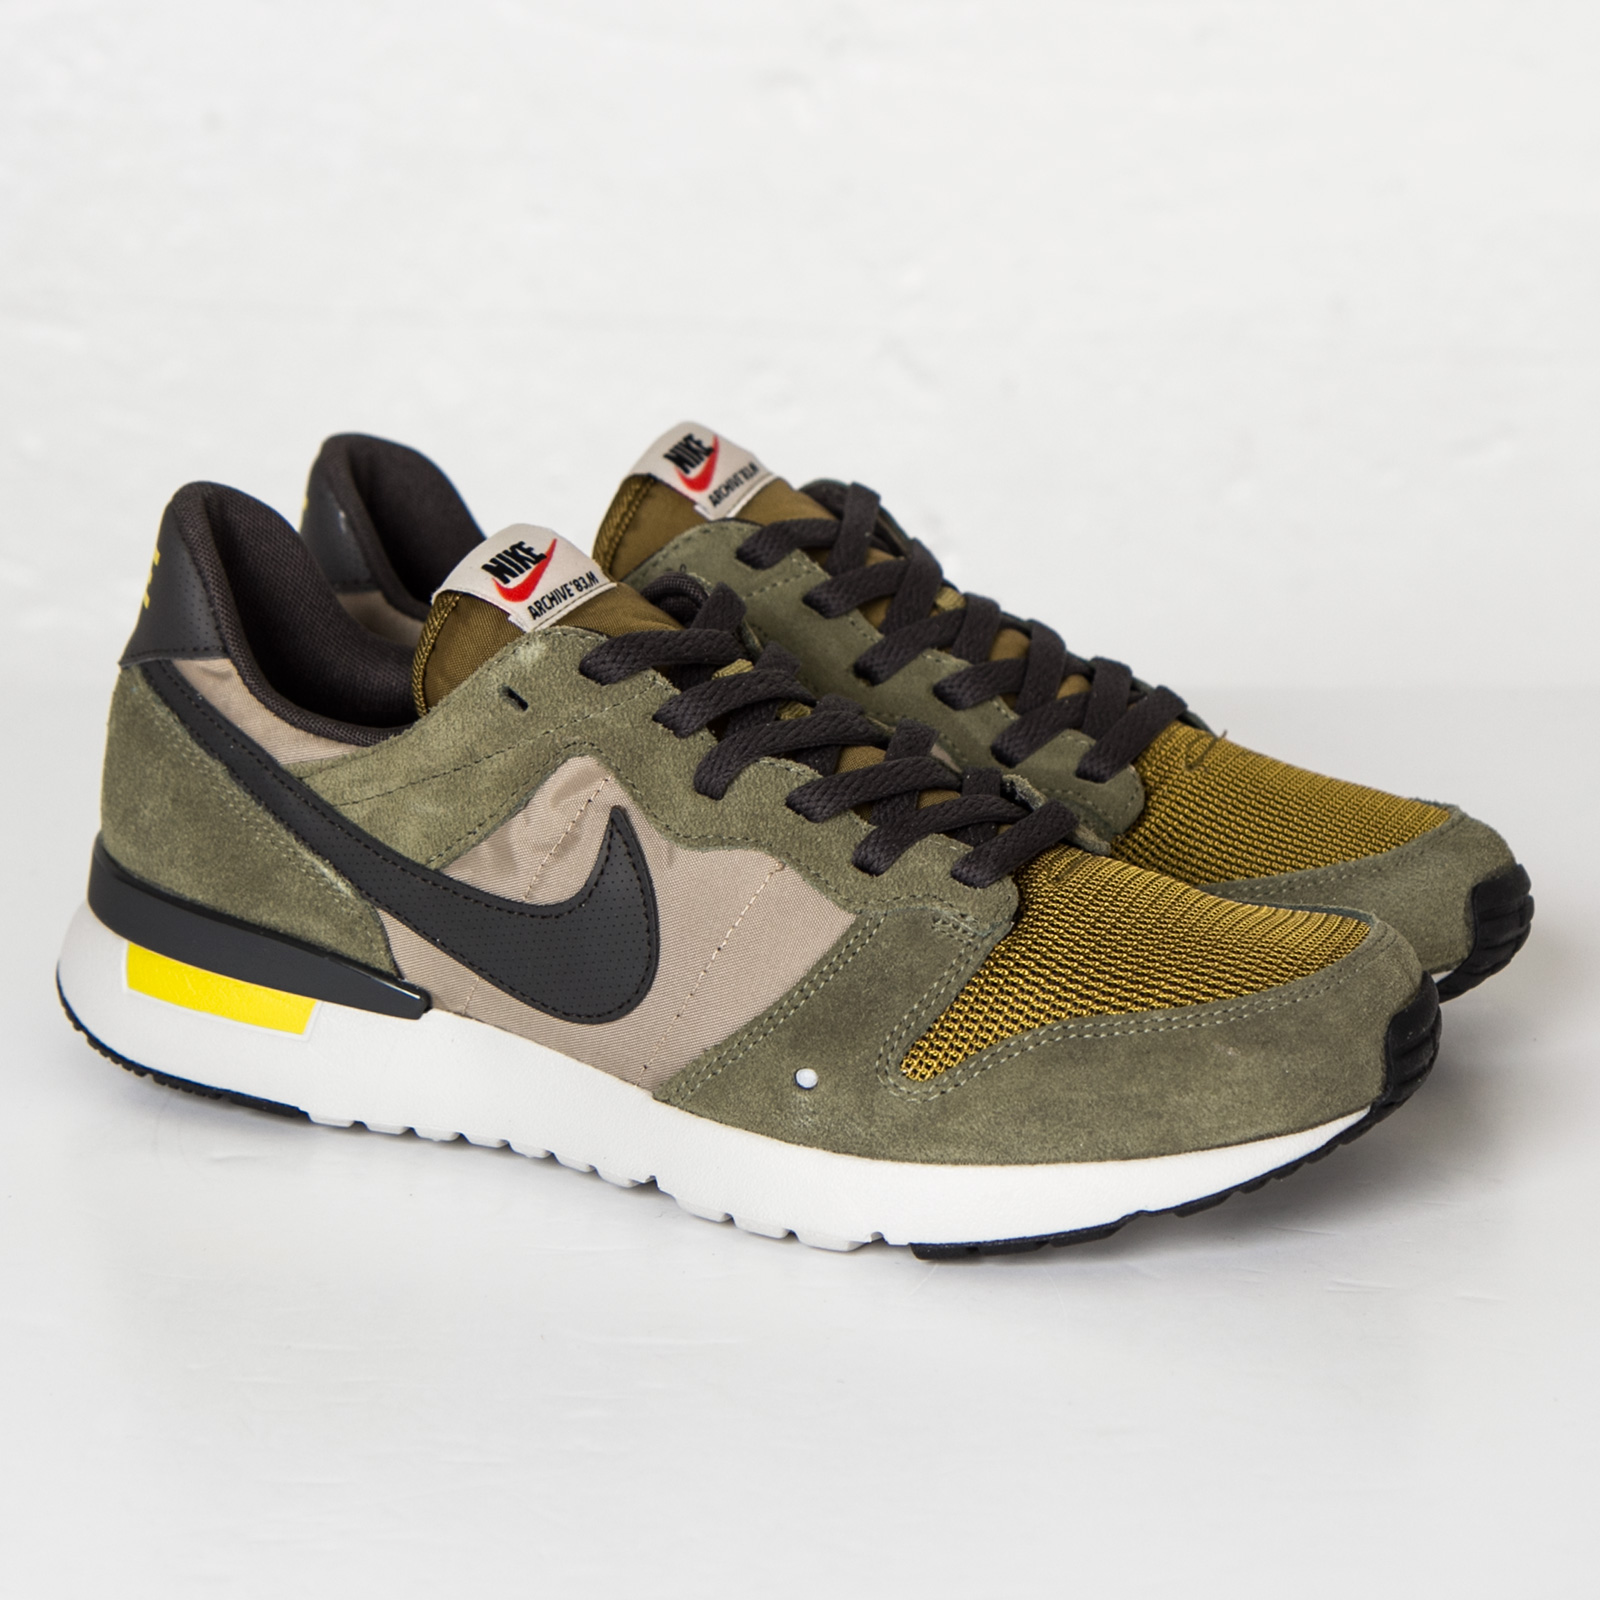 low priced a9f87 a18c5 Nike Archive 83 M